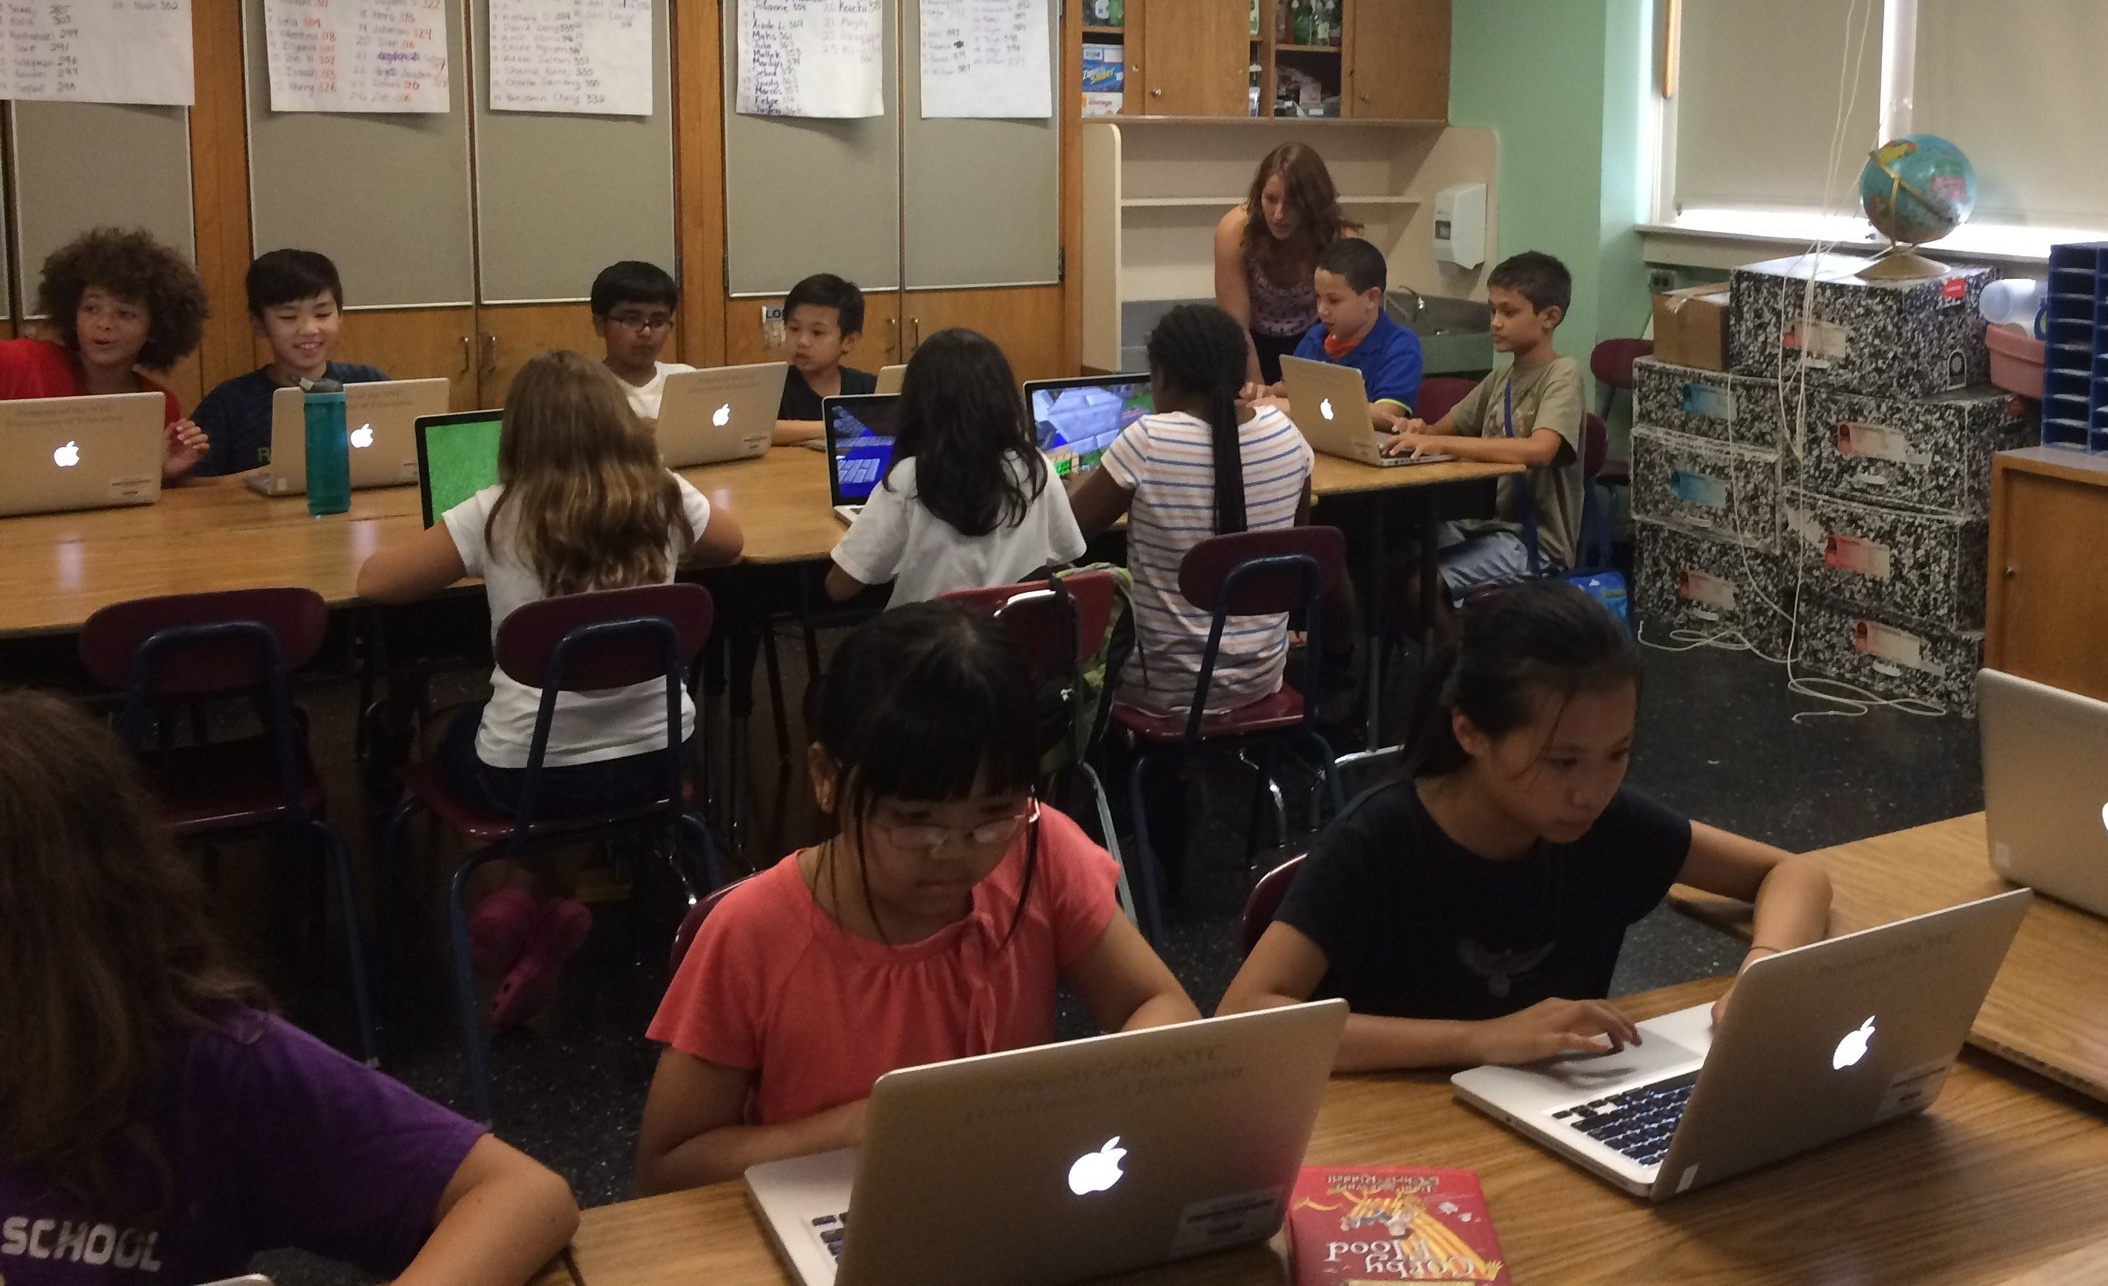 Minecraft is an effective entry into computer science education for young learners in the DOE's Summer STEM program.